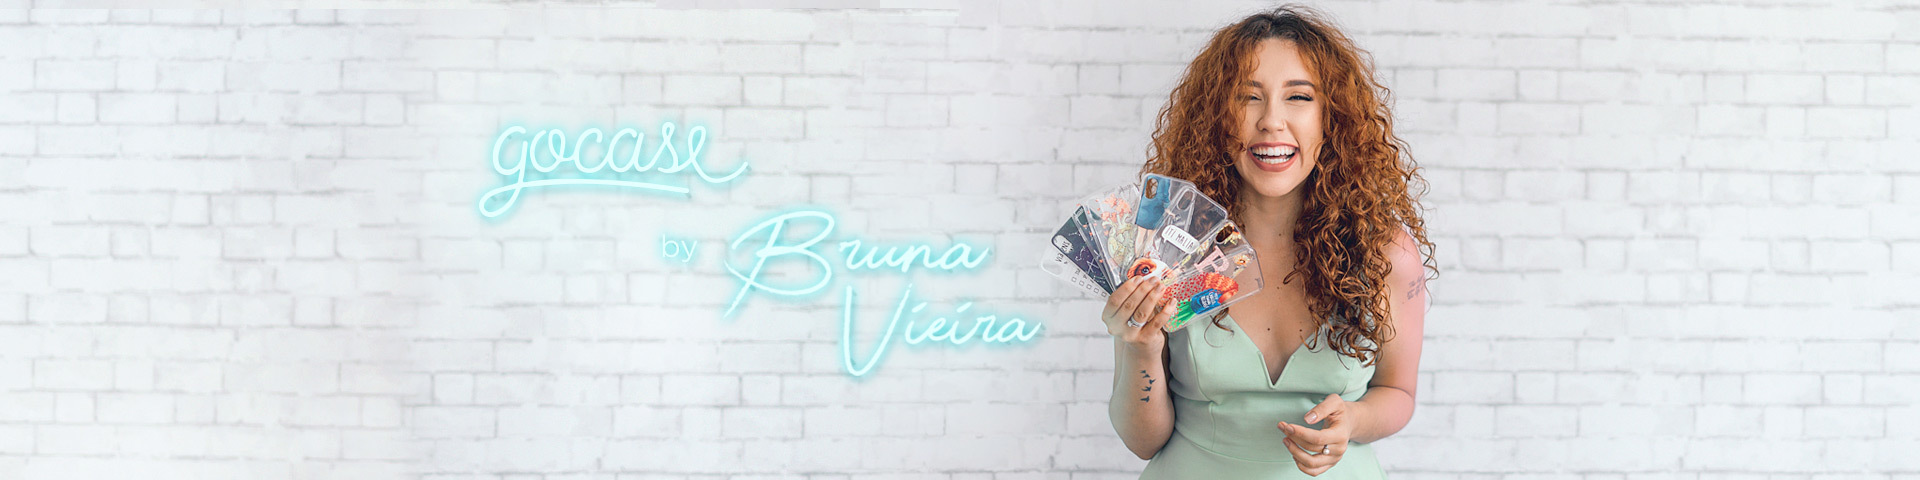 Bruna vieira collection